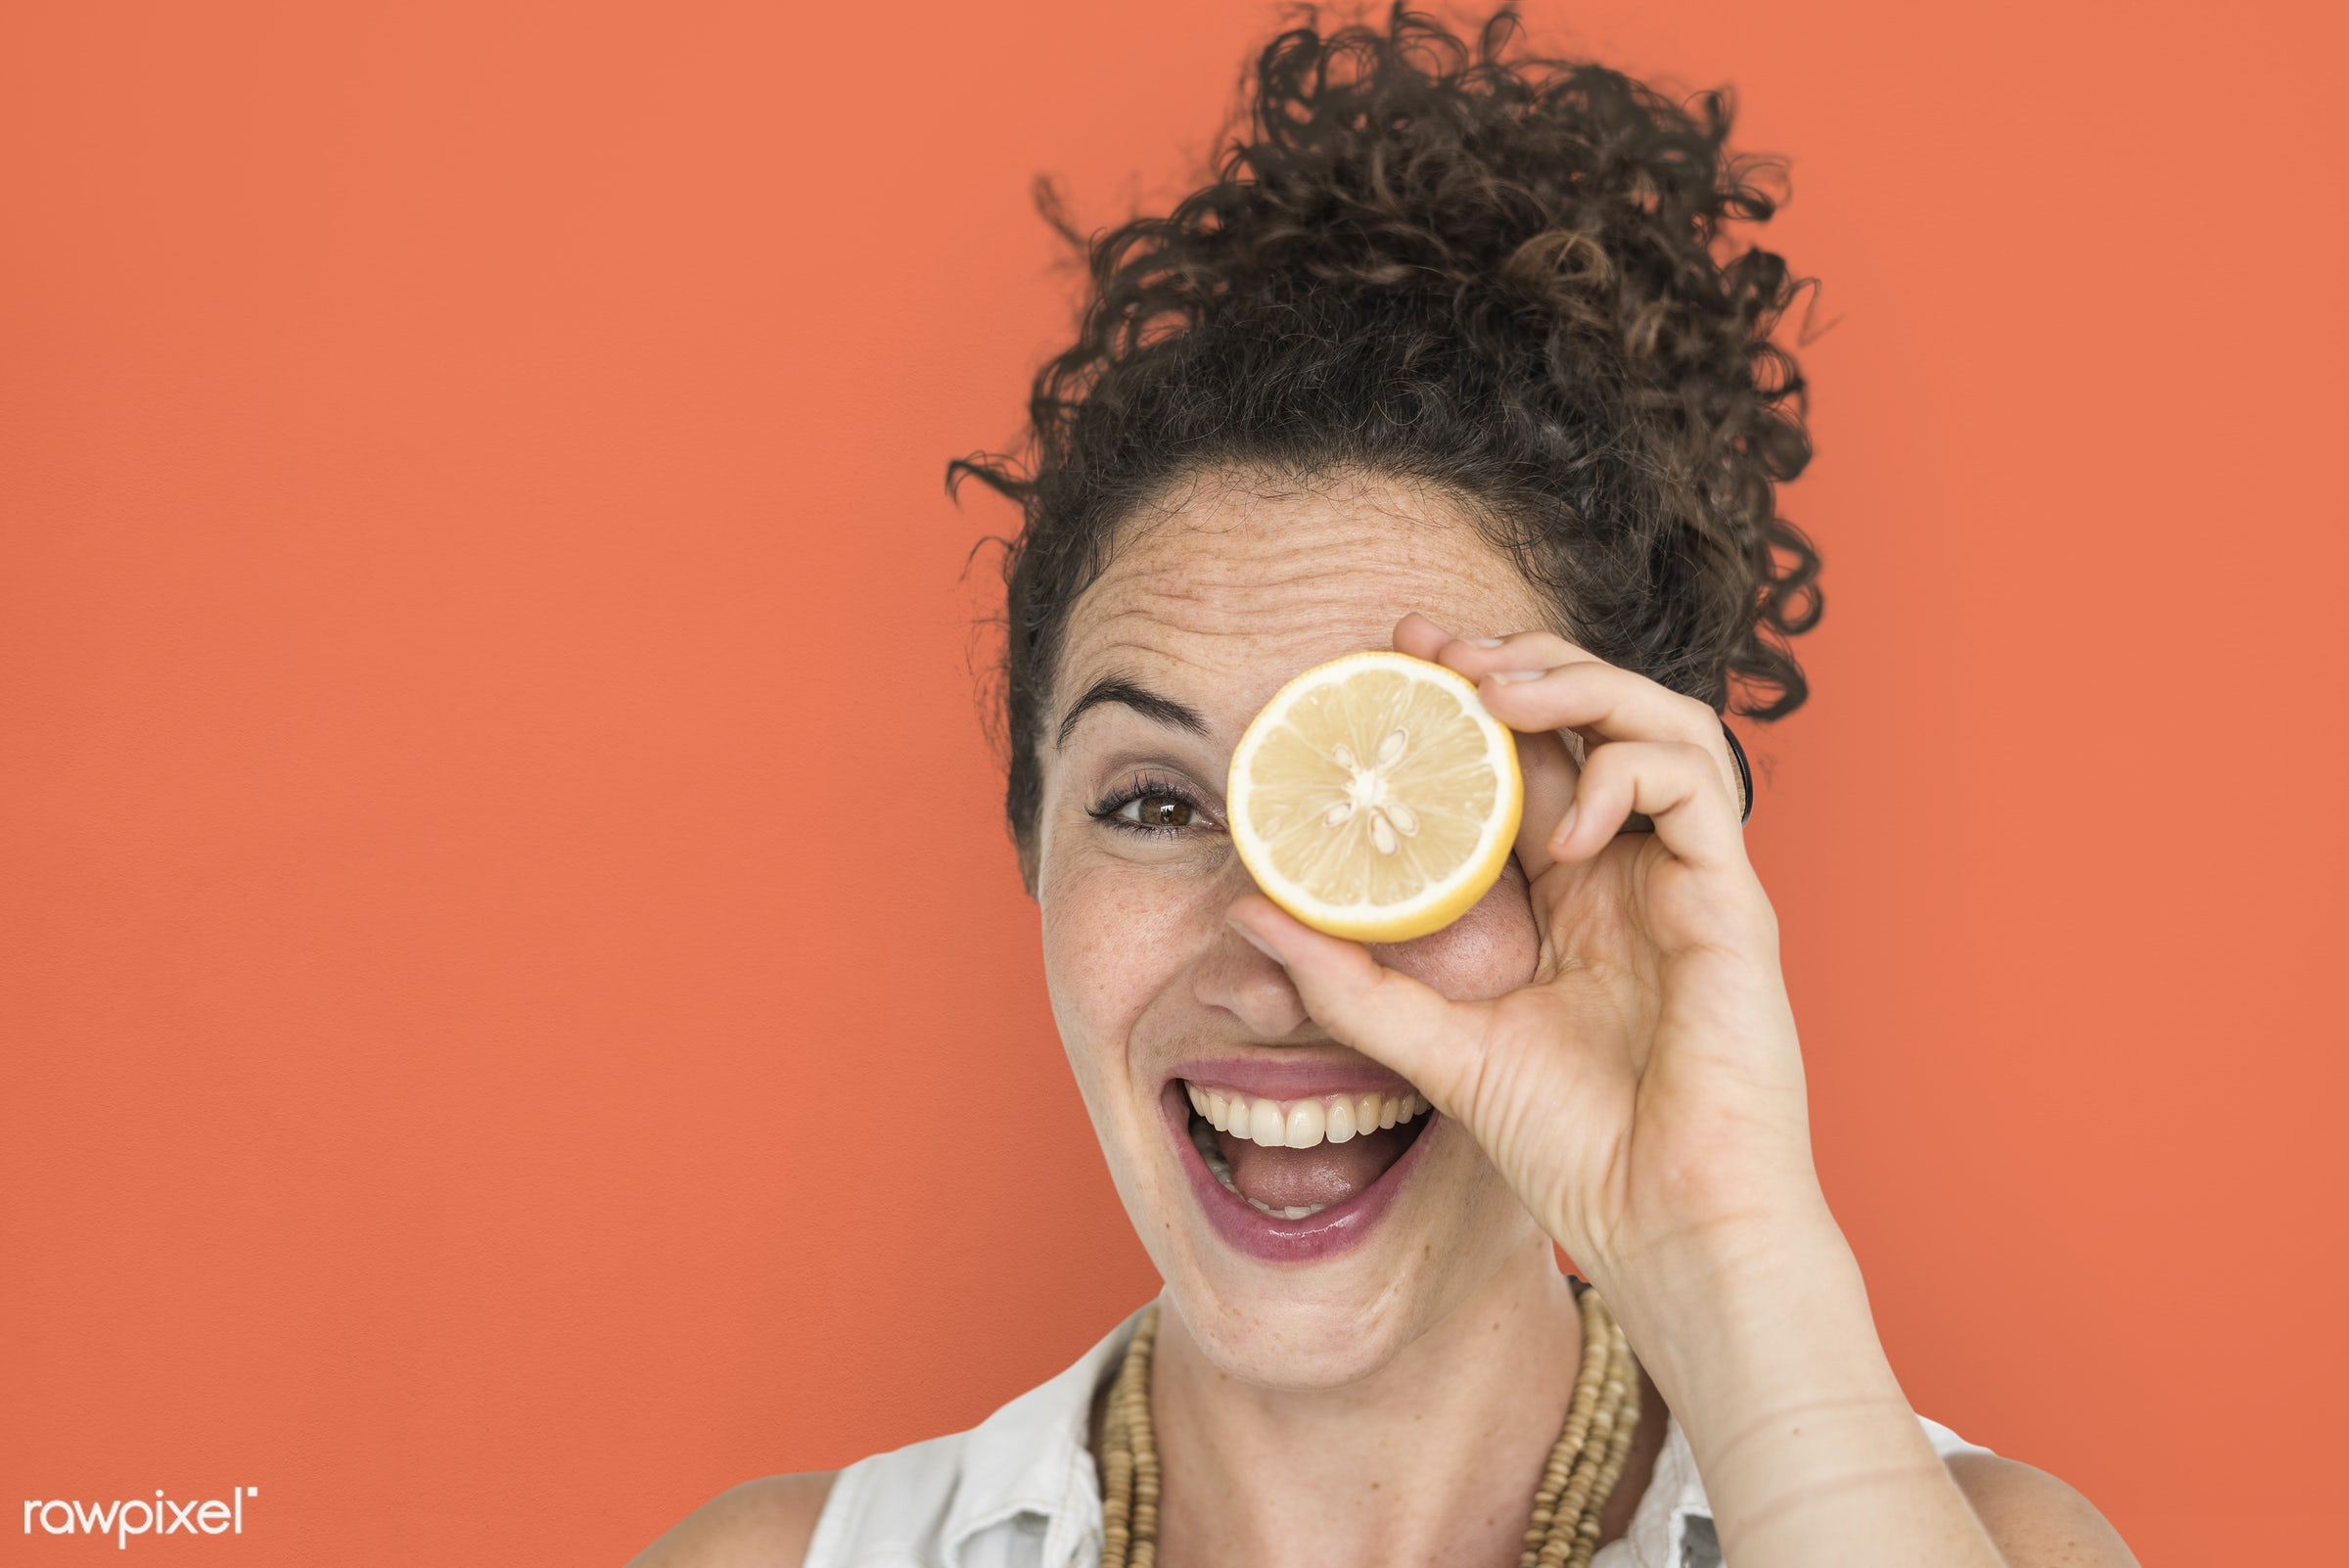 studio, expression, person, people, eyes, cover, woman, cheerful, smiling, isolated, orange, fruit, human hand, happiness,...